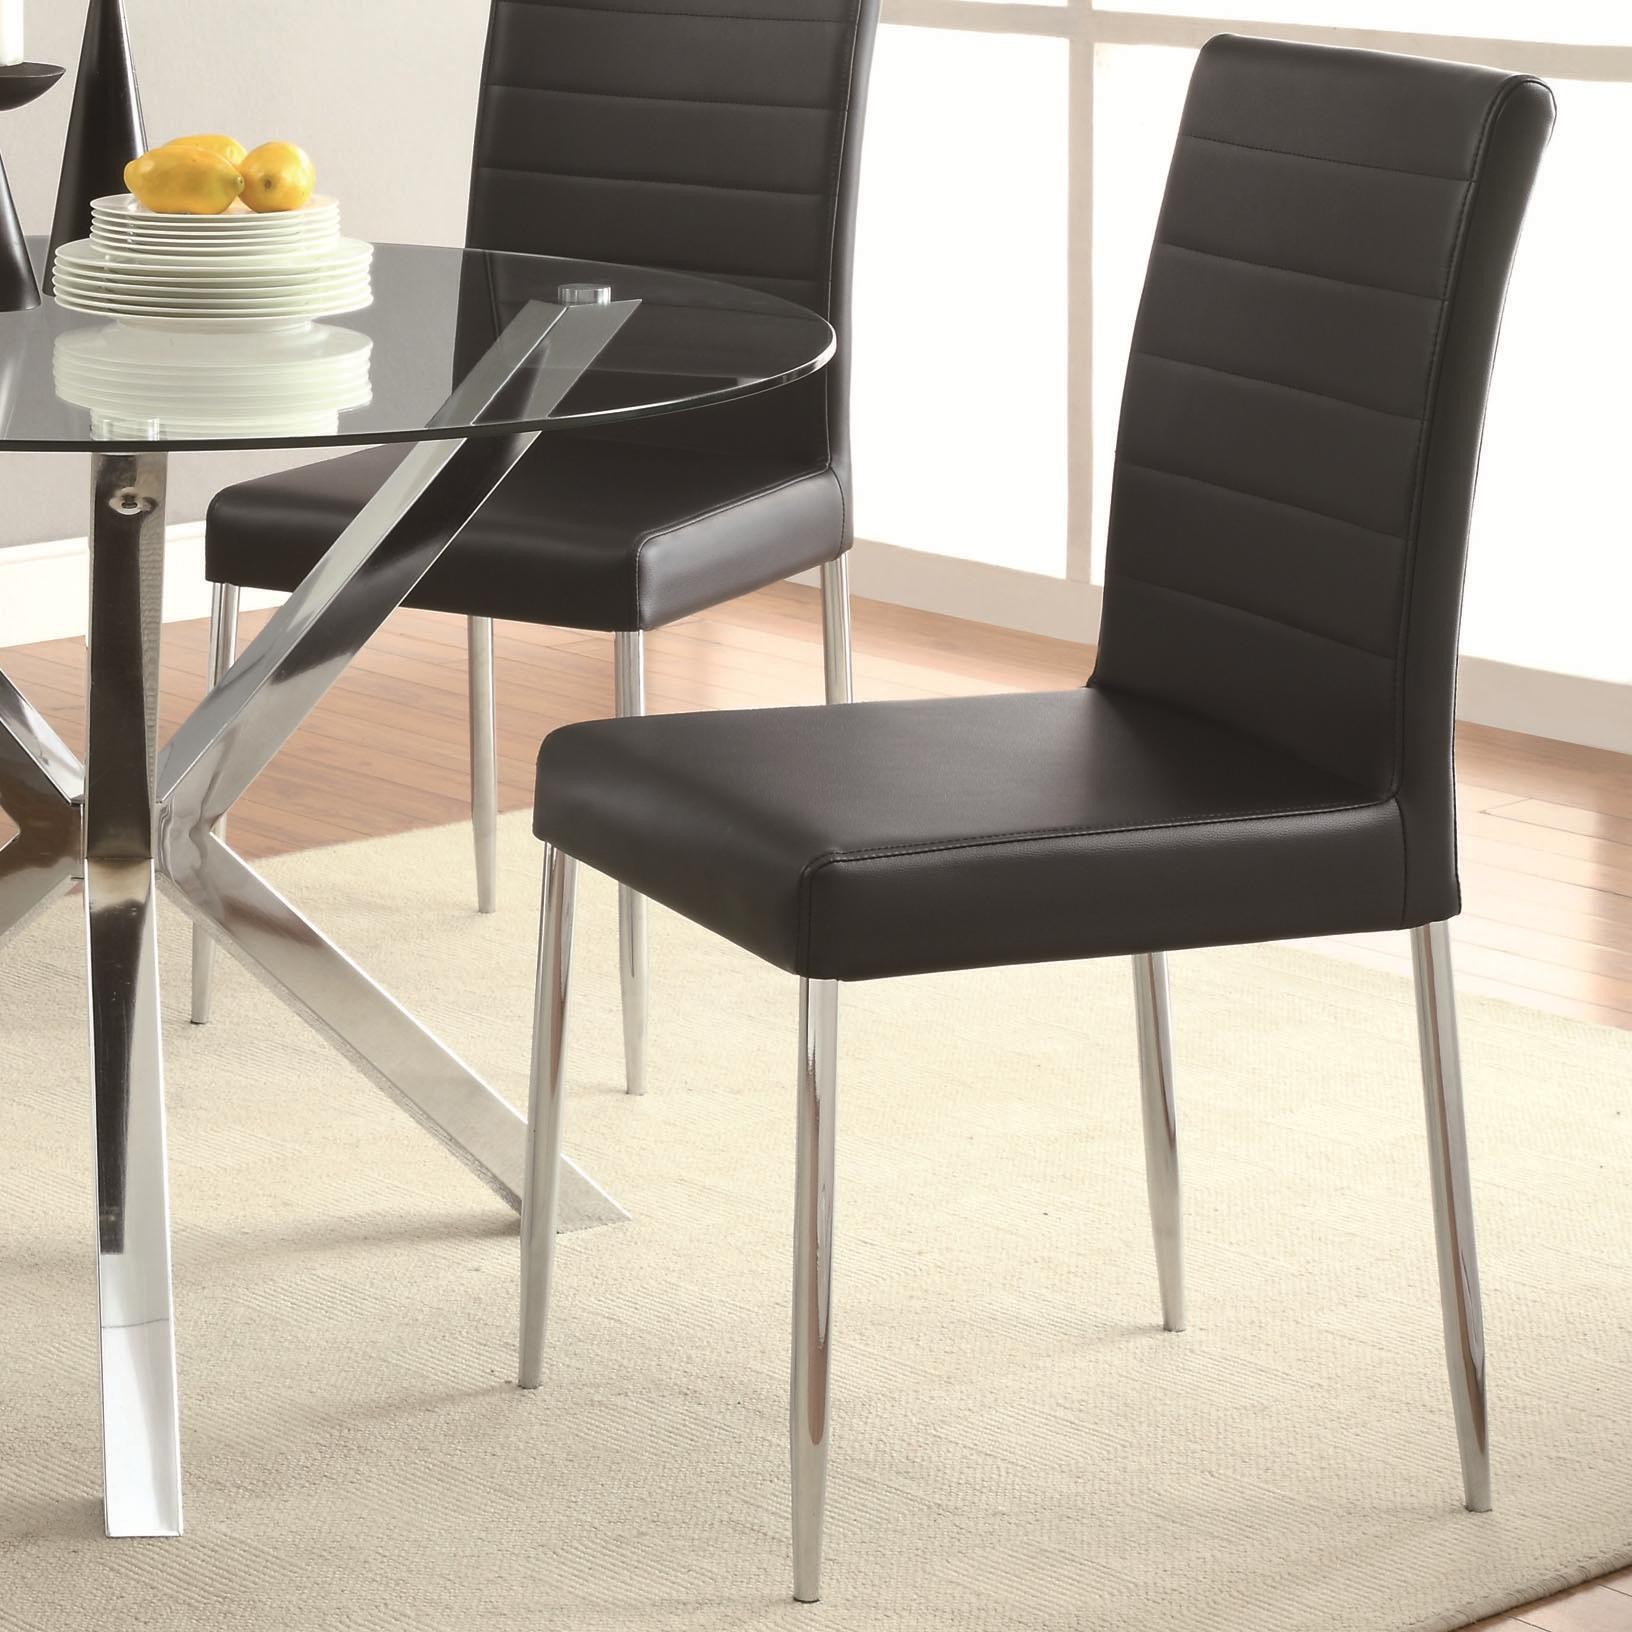 Coaster Vance 120767blk Contemporary Dining Chair With Black Vinyl Seat Cushion Corner Furniture Dining Side Chairs